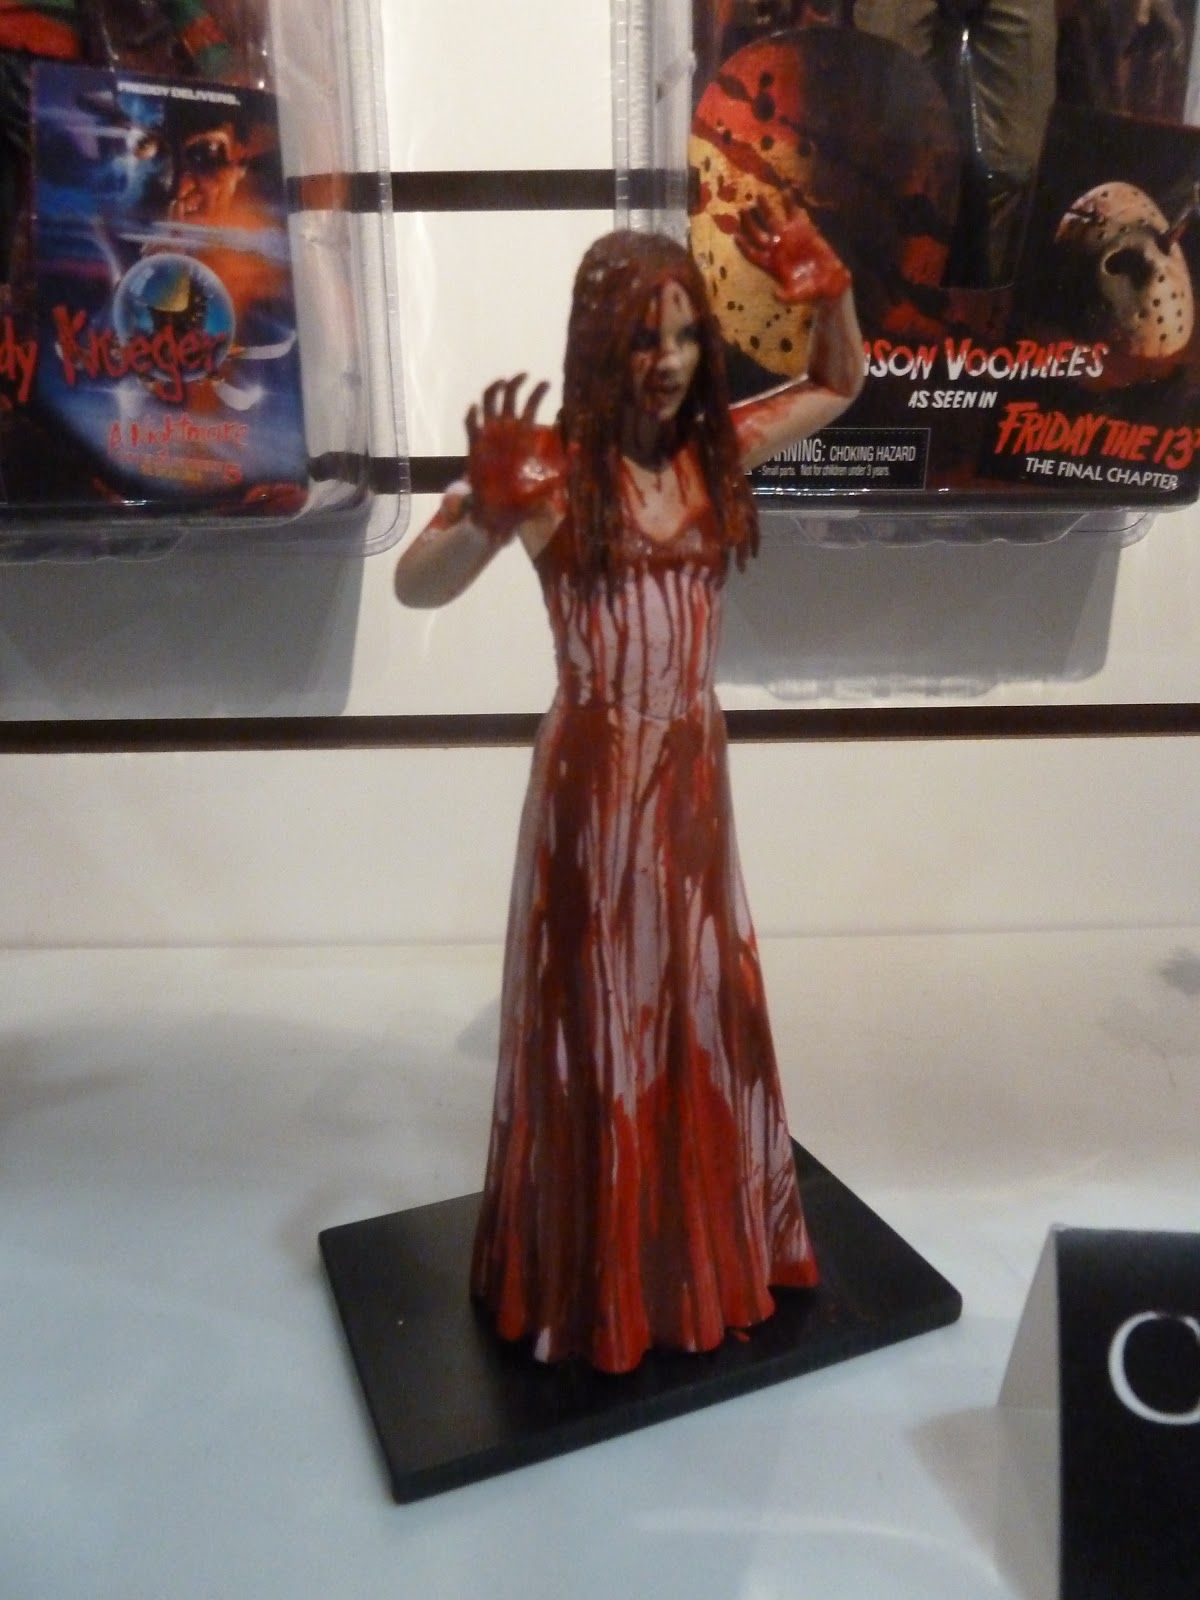 Check out more of my neca toy fair 2013 coverage here